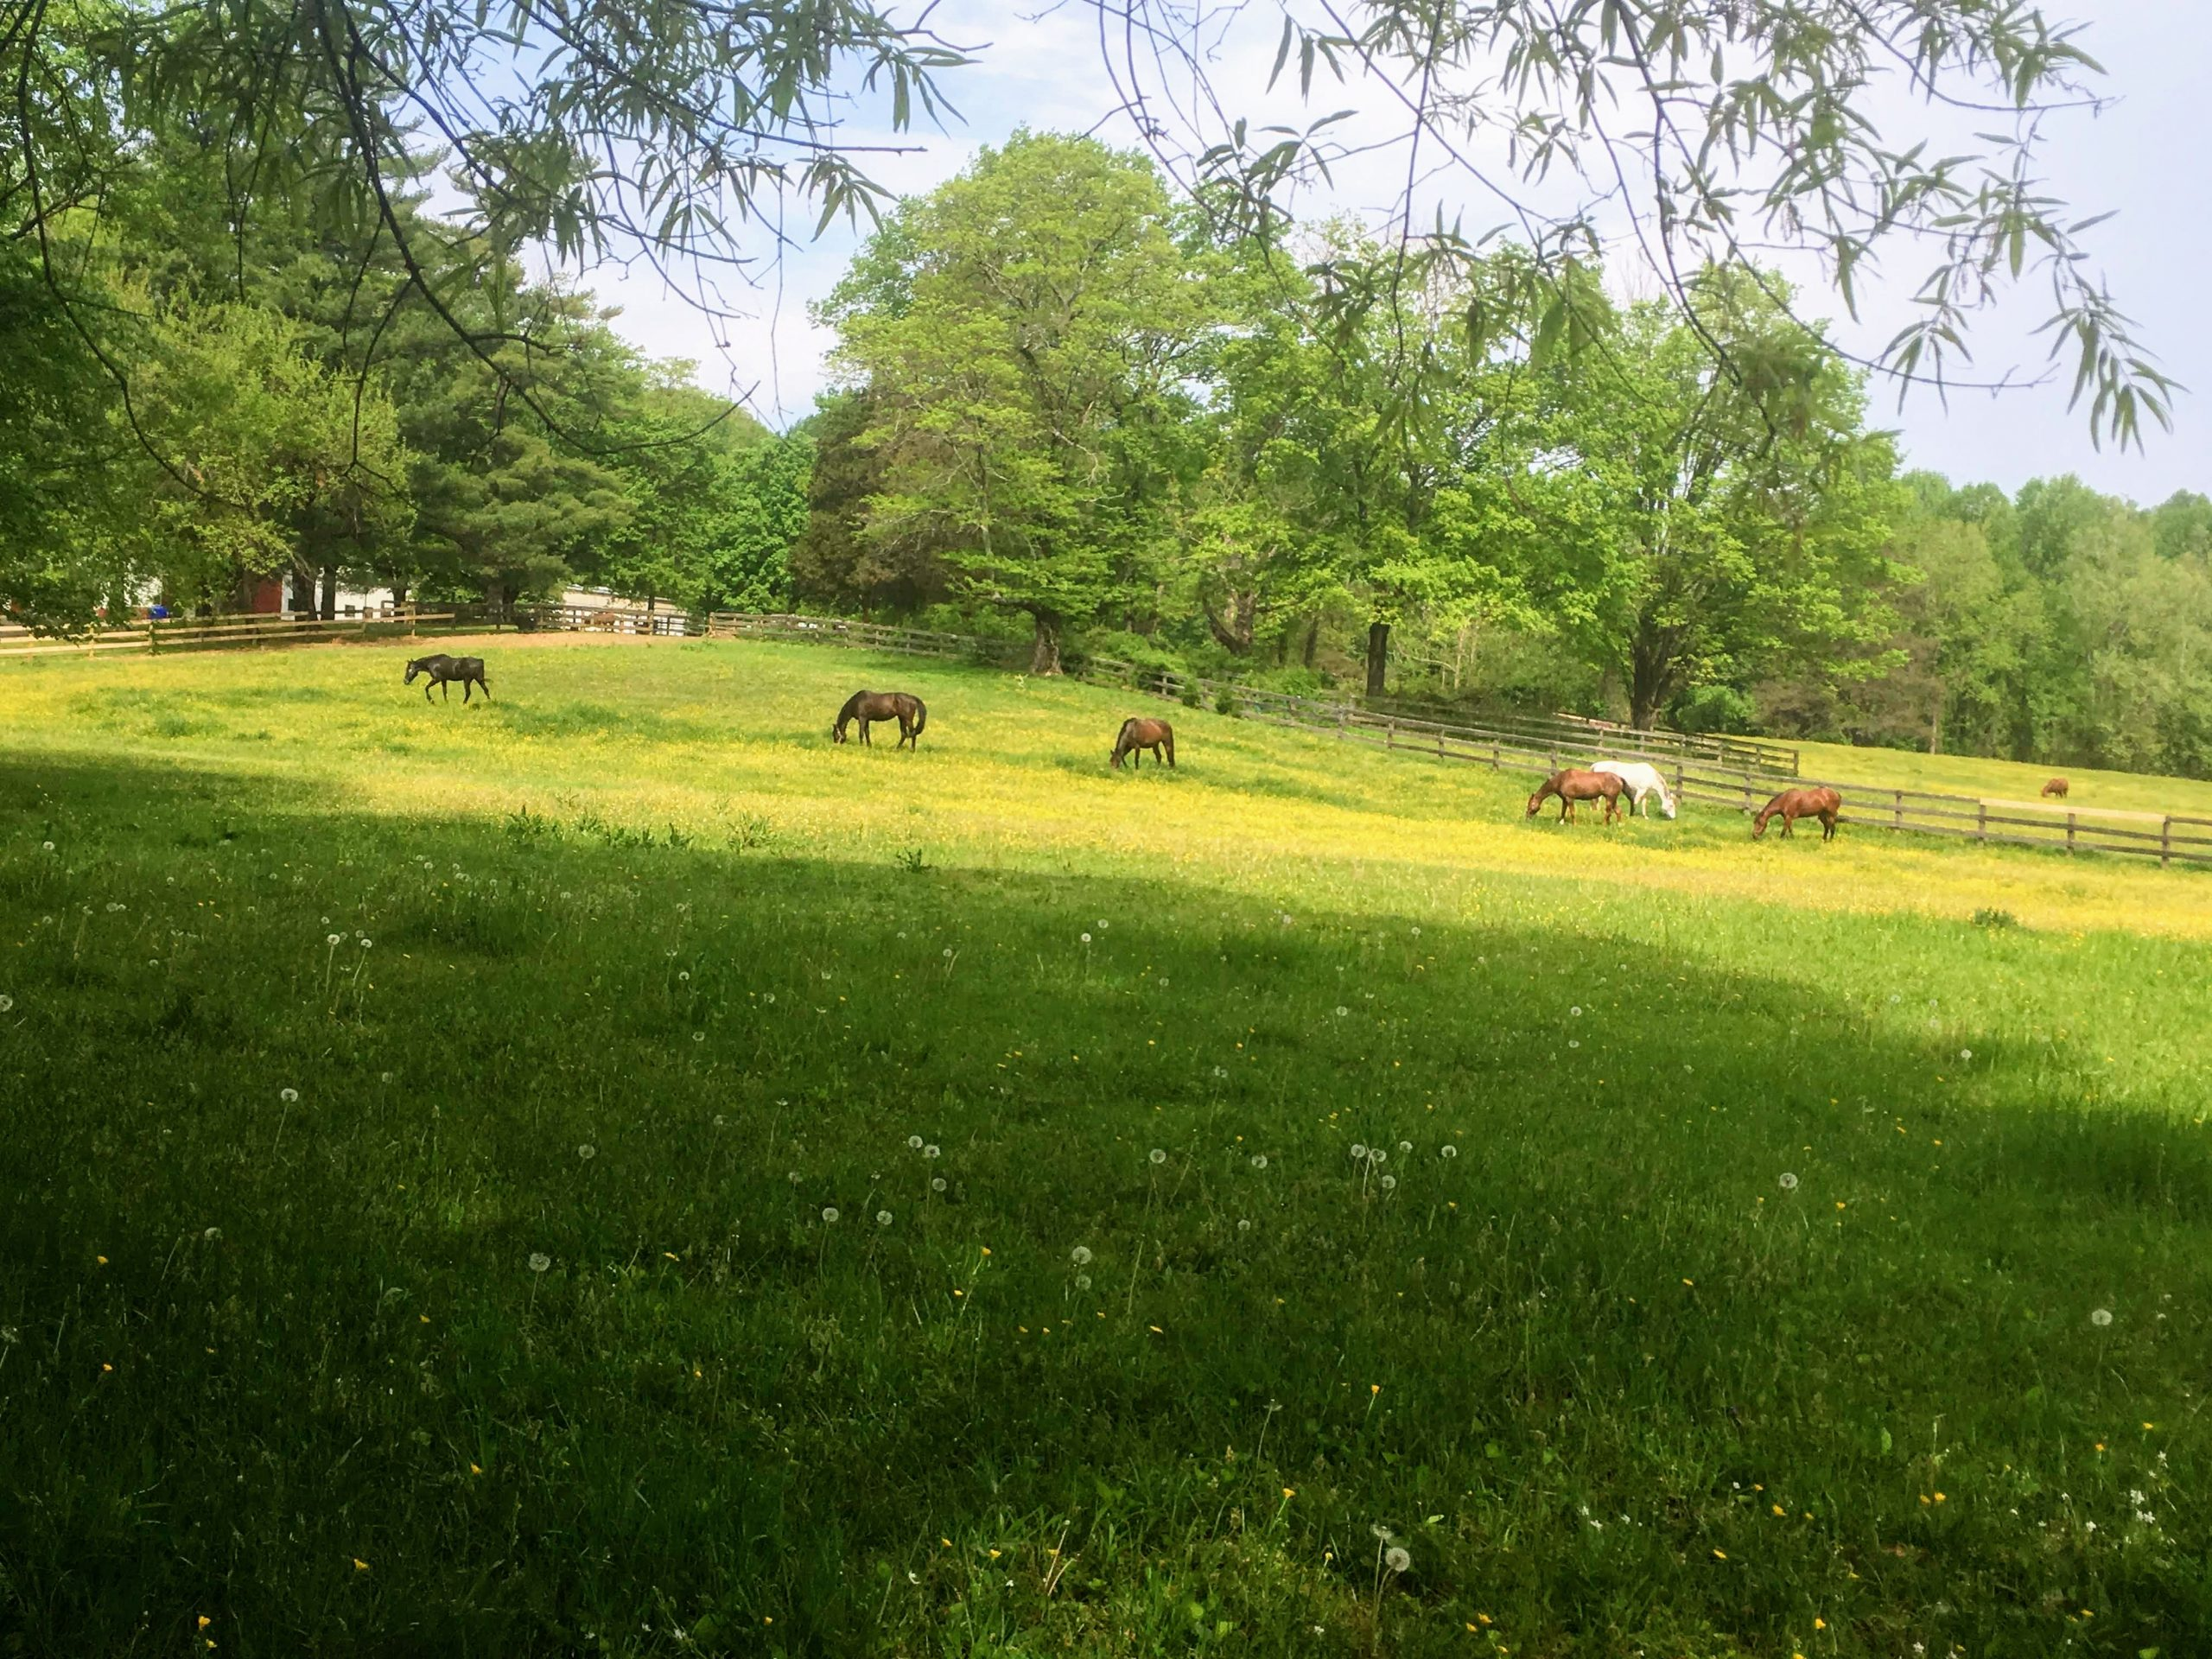 A wide shot of an open, grassy field shows horses freely grazing on a sunny day.